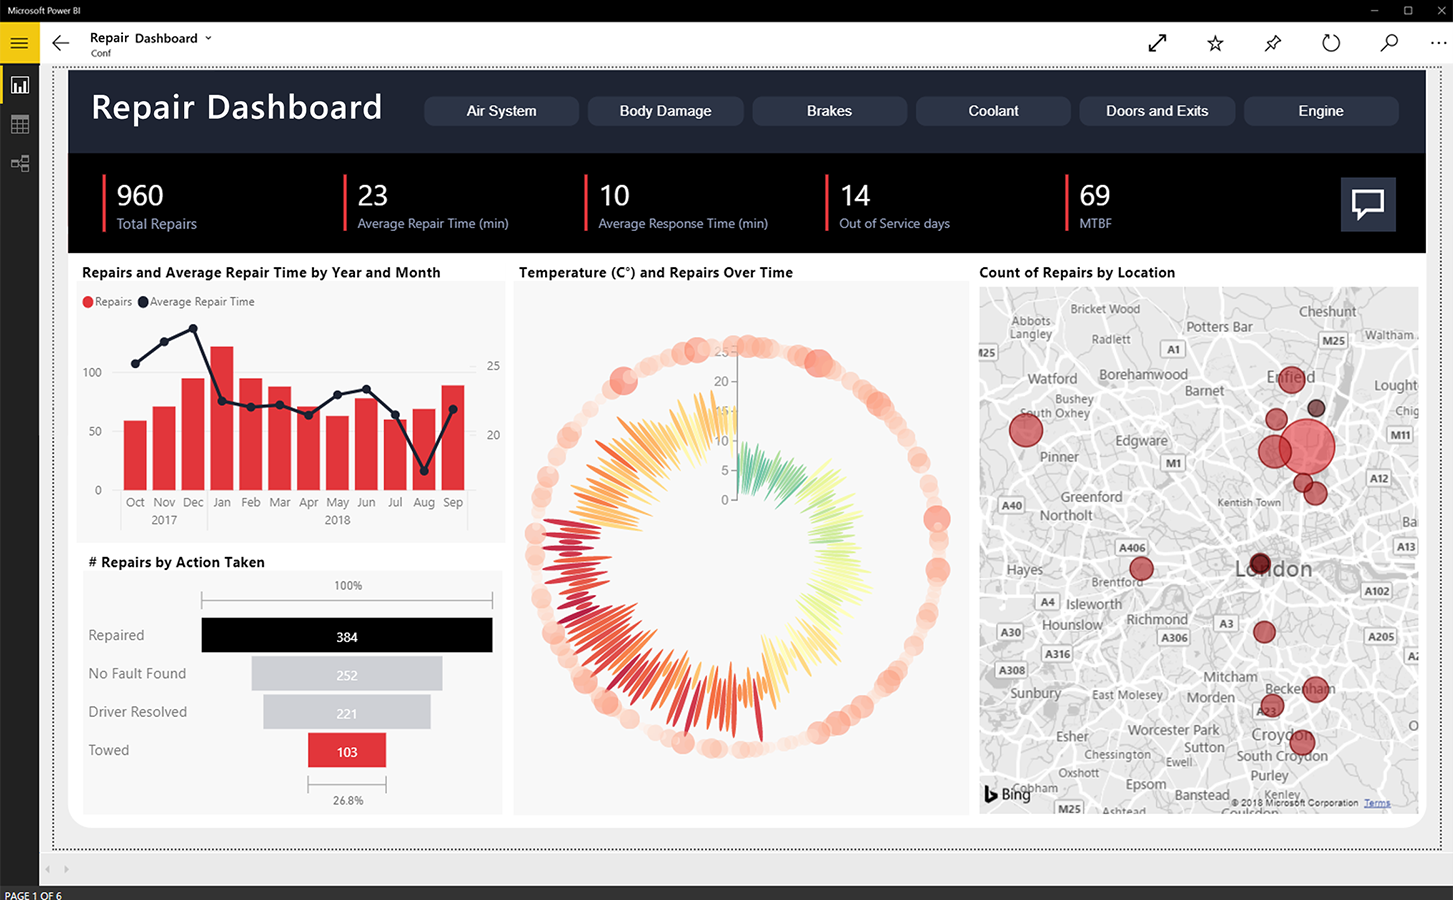 Webinar - Promoting and Governing Power BI in Your Organization